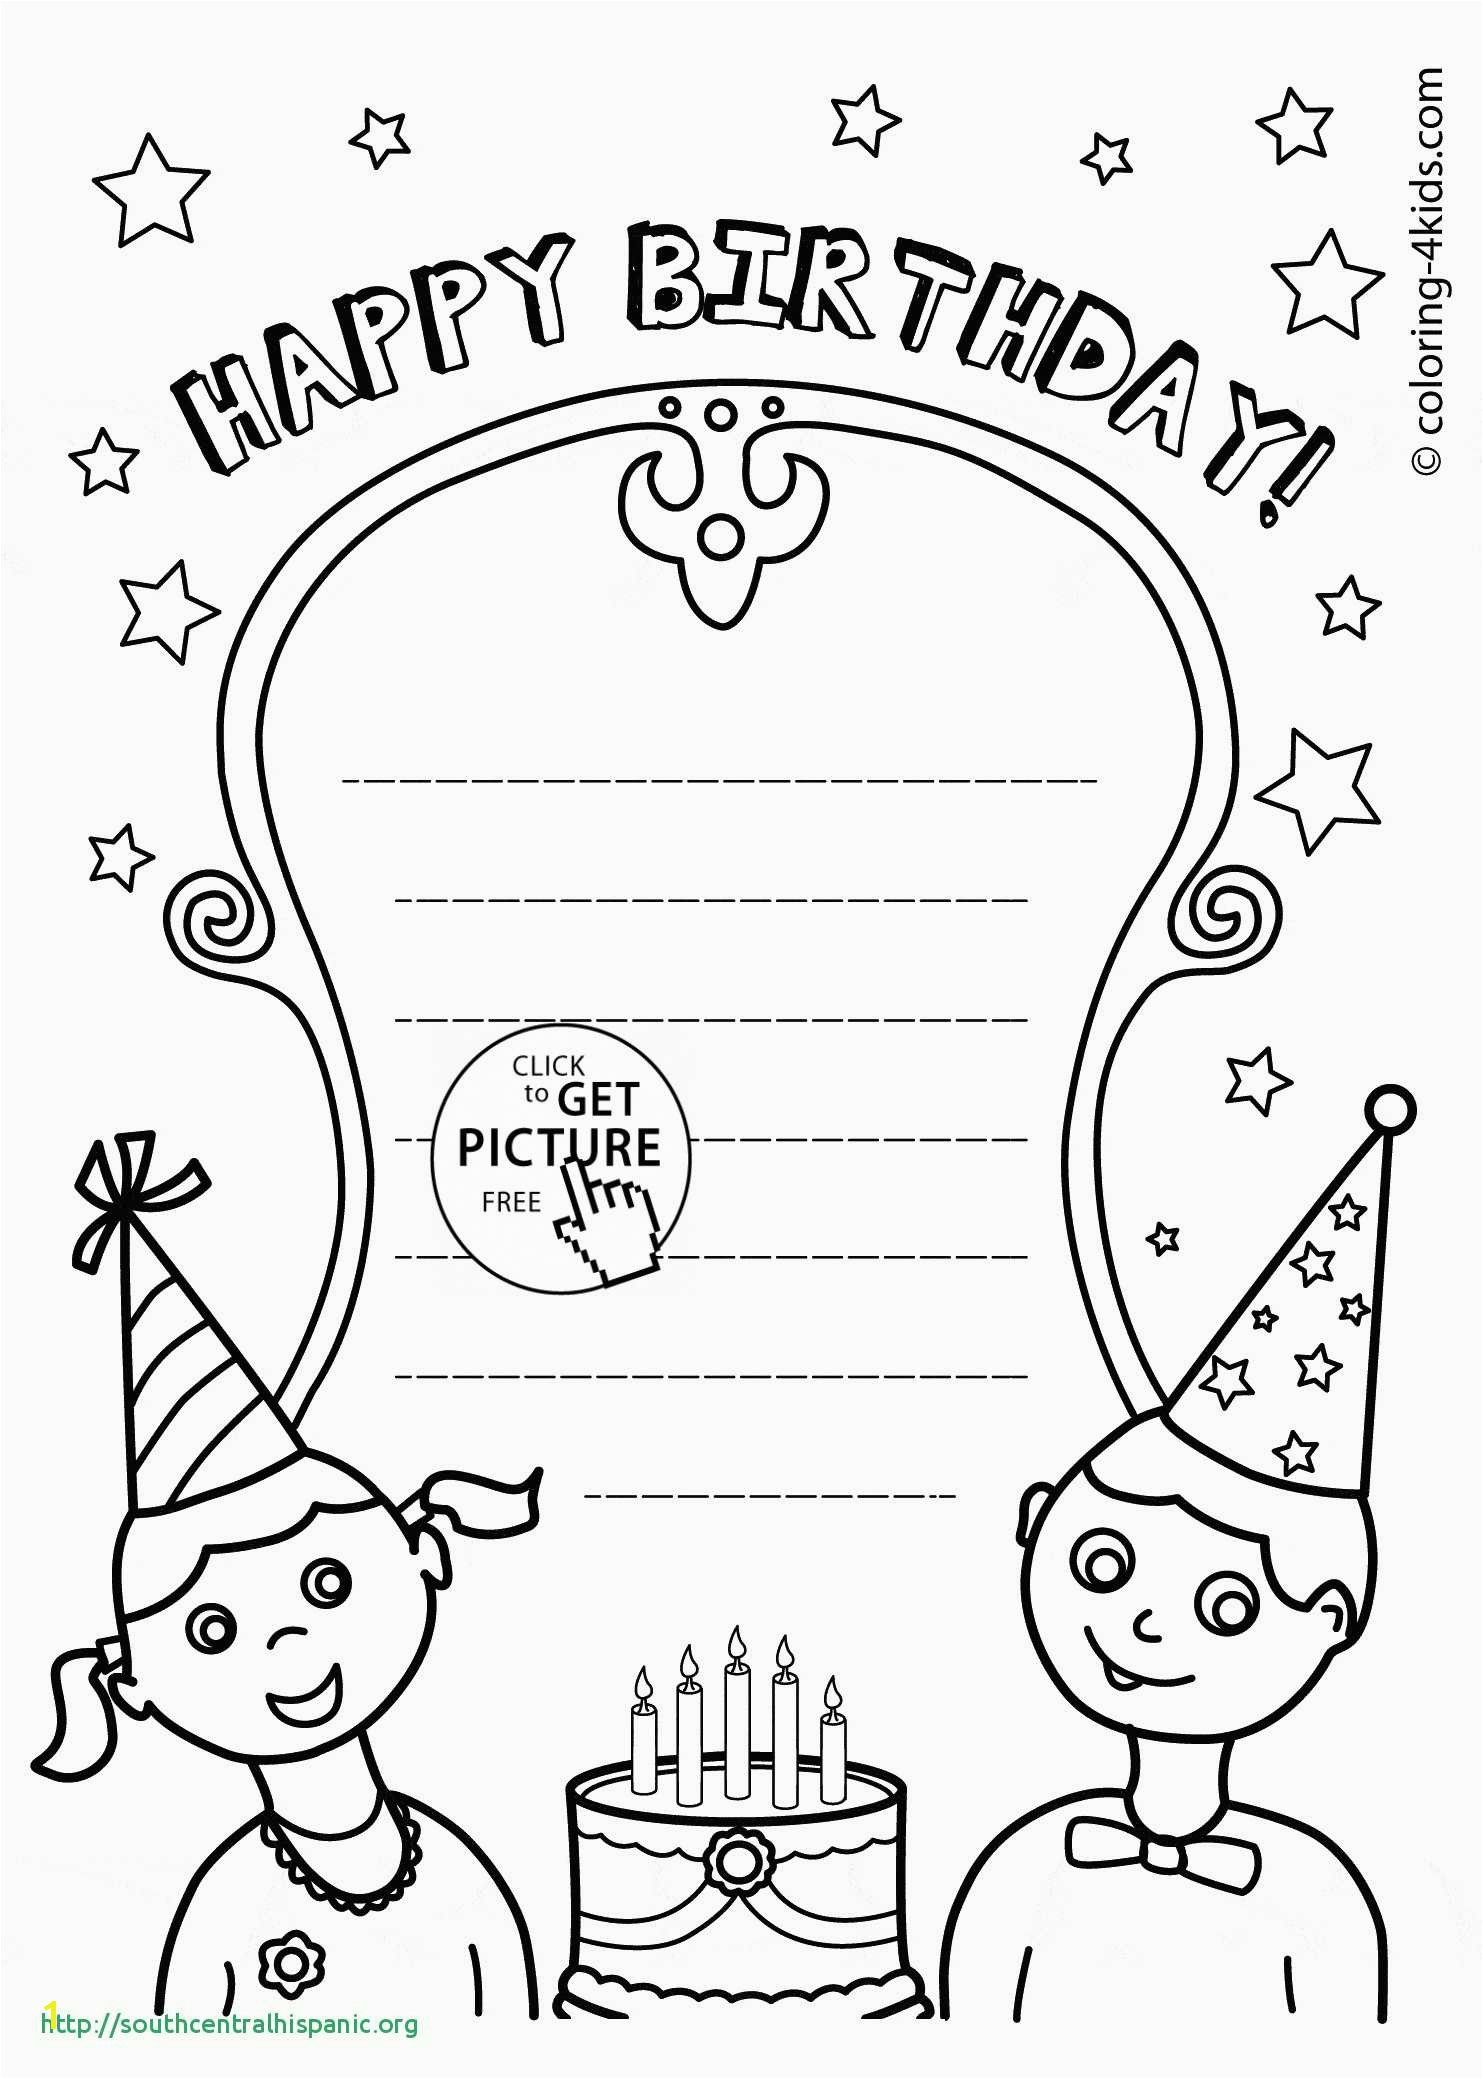 Happy Birthday Uncle Coloring Pages 22 Nouveau Happy Birthday Card Printable Coloring Pages